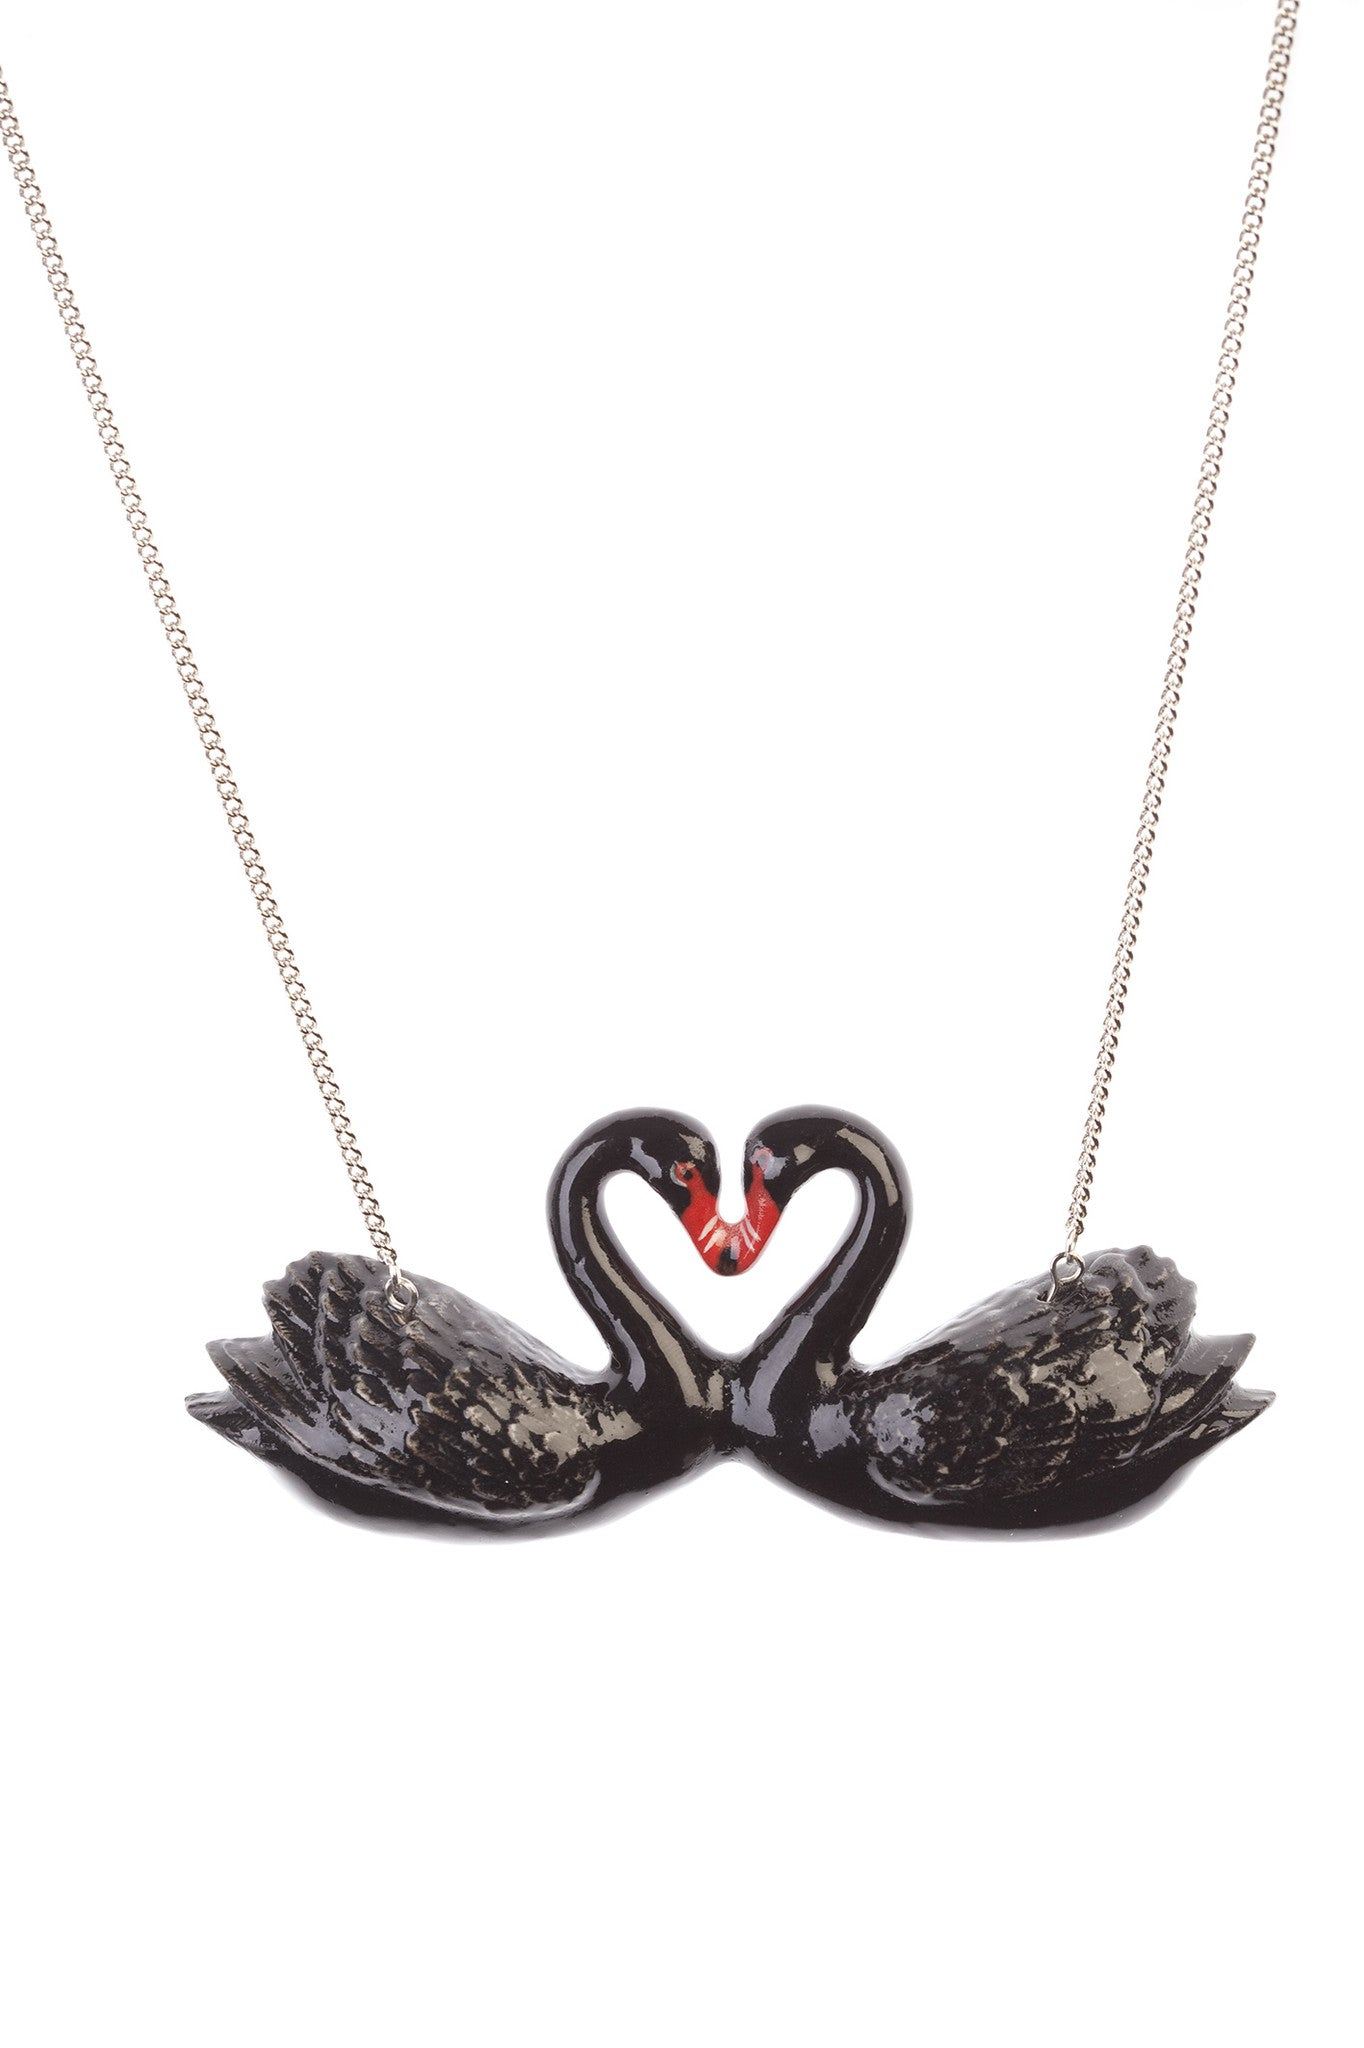 Black Kissing Swans Necklace